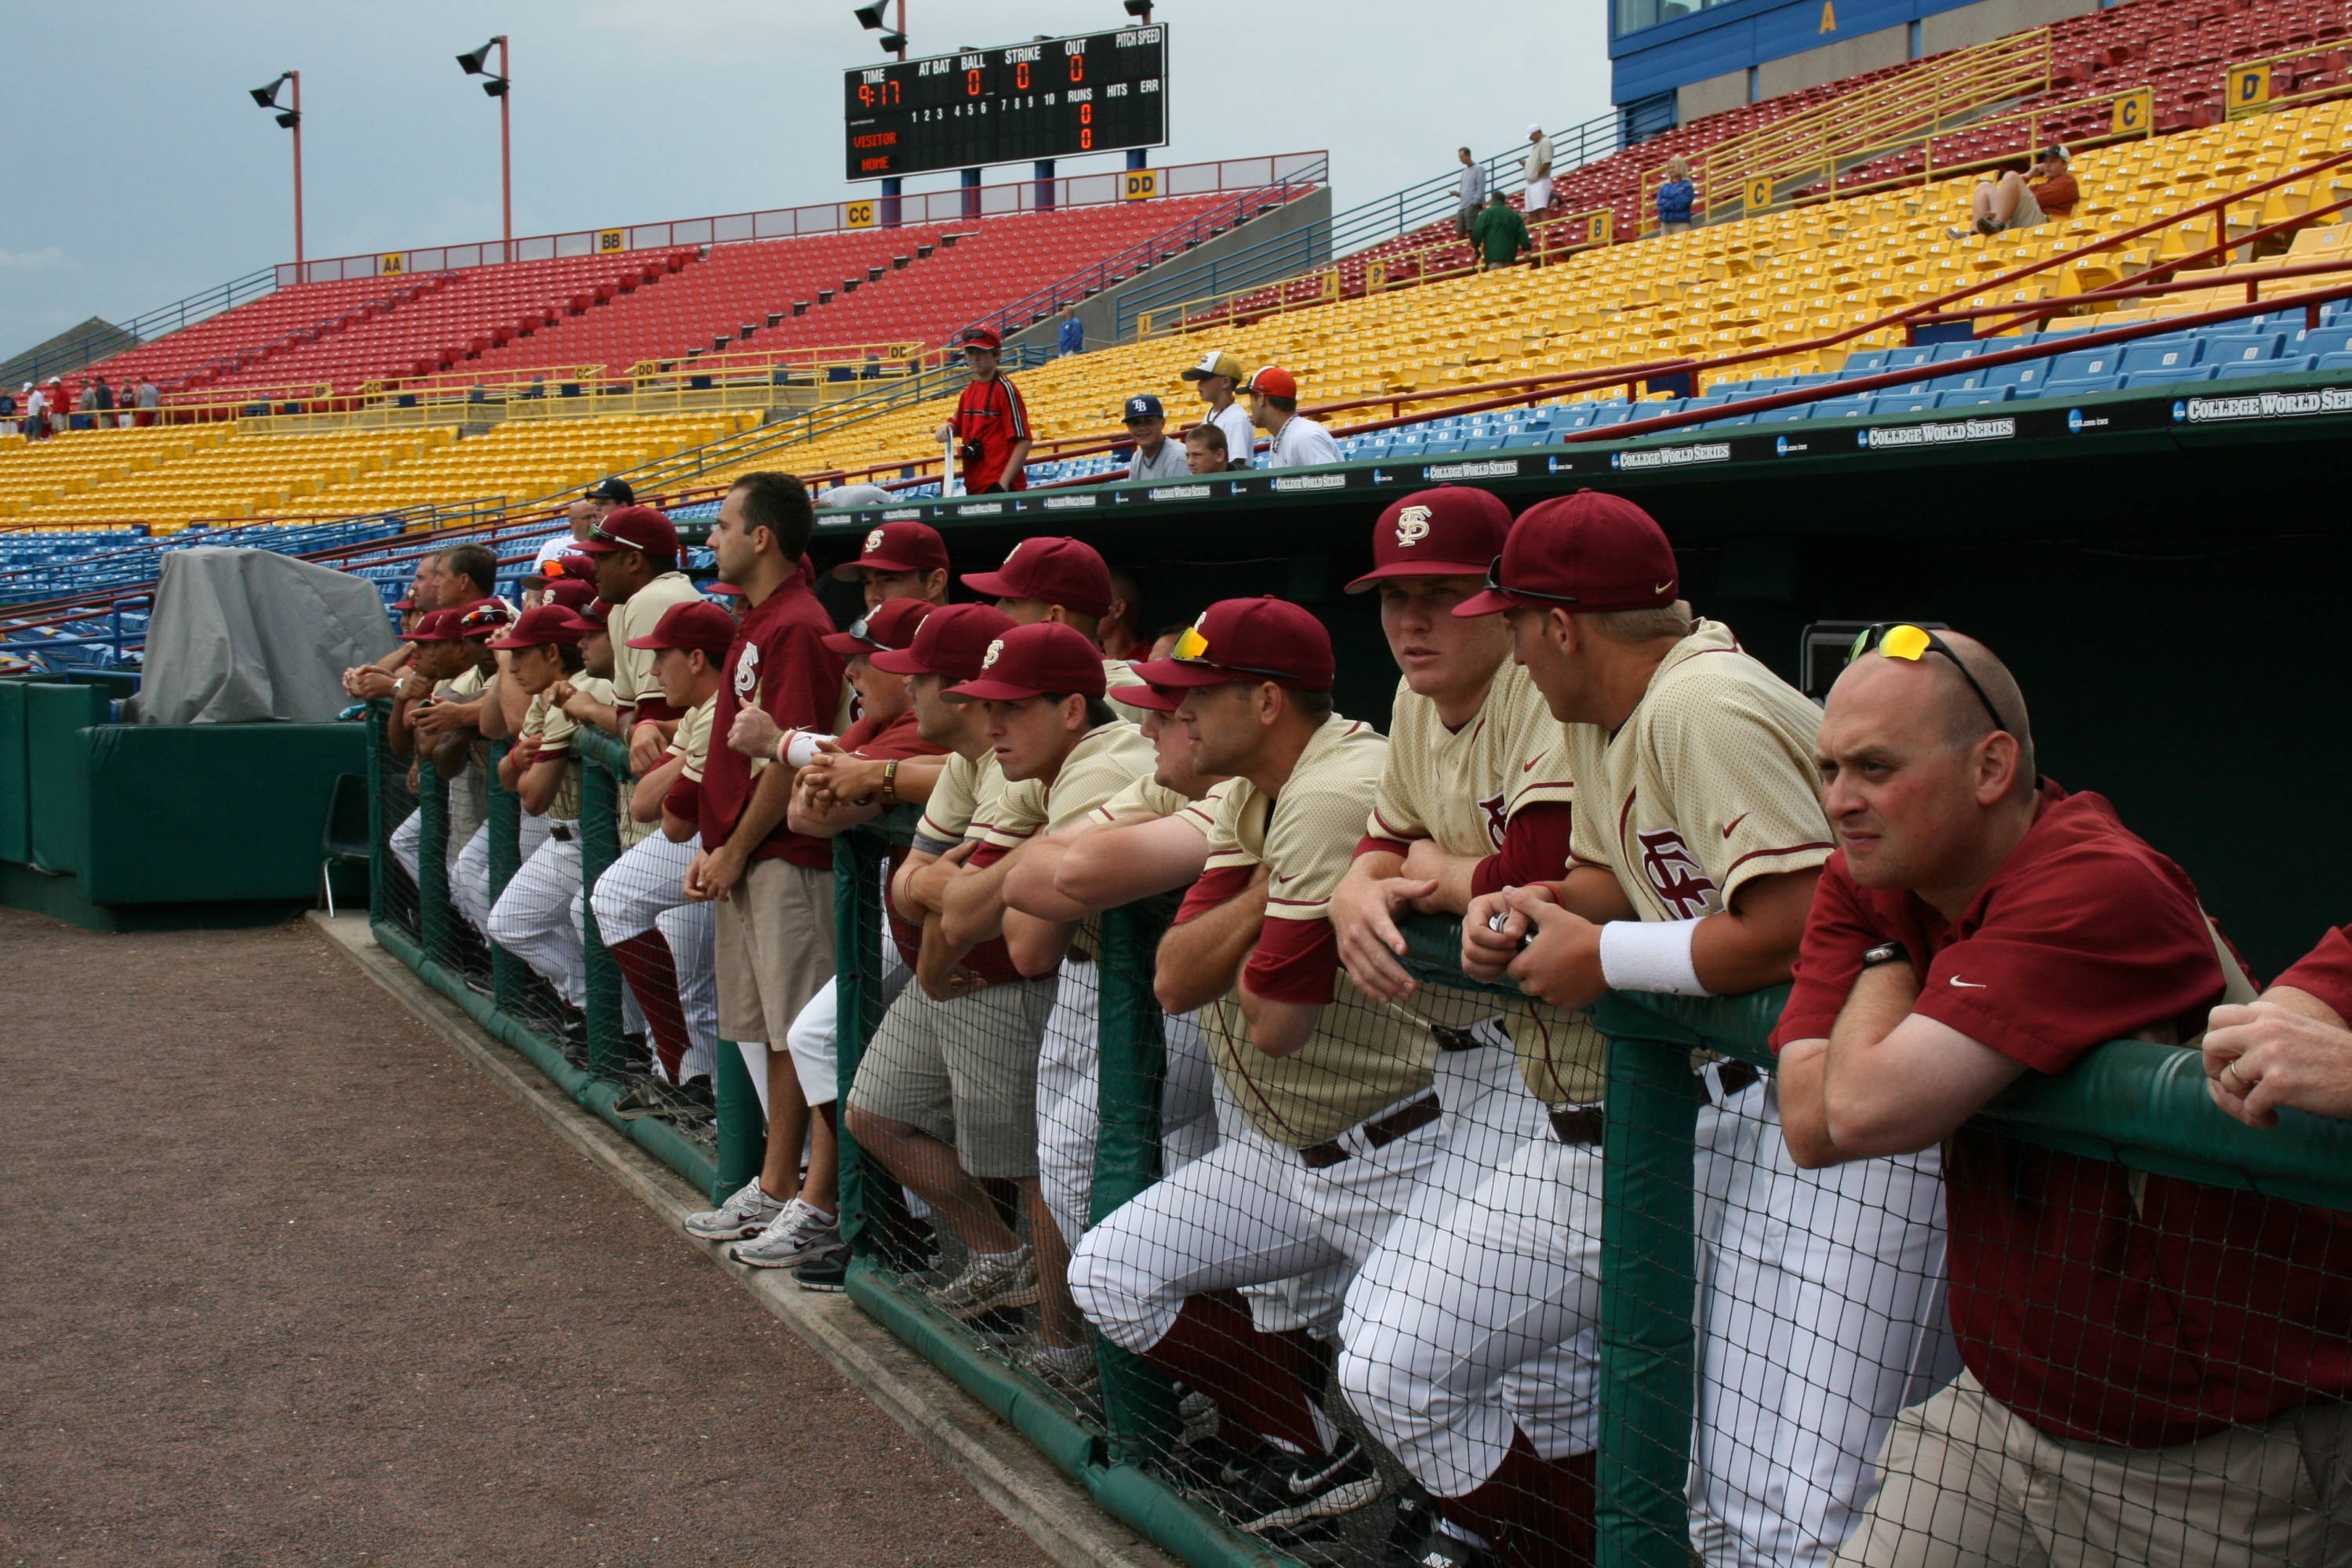 The 2010 Seminoles in the first base dugout inside Rosenblatt